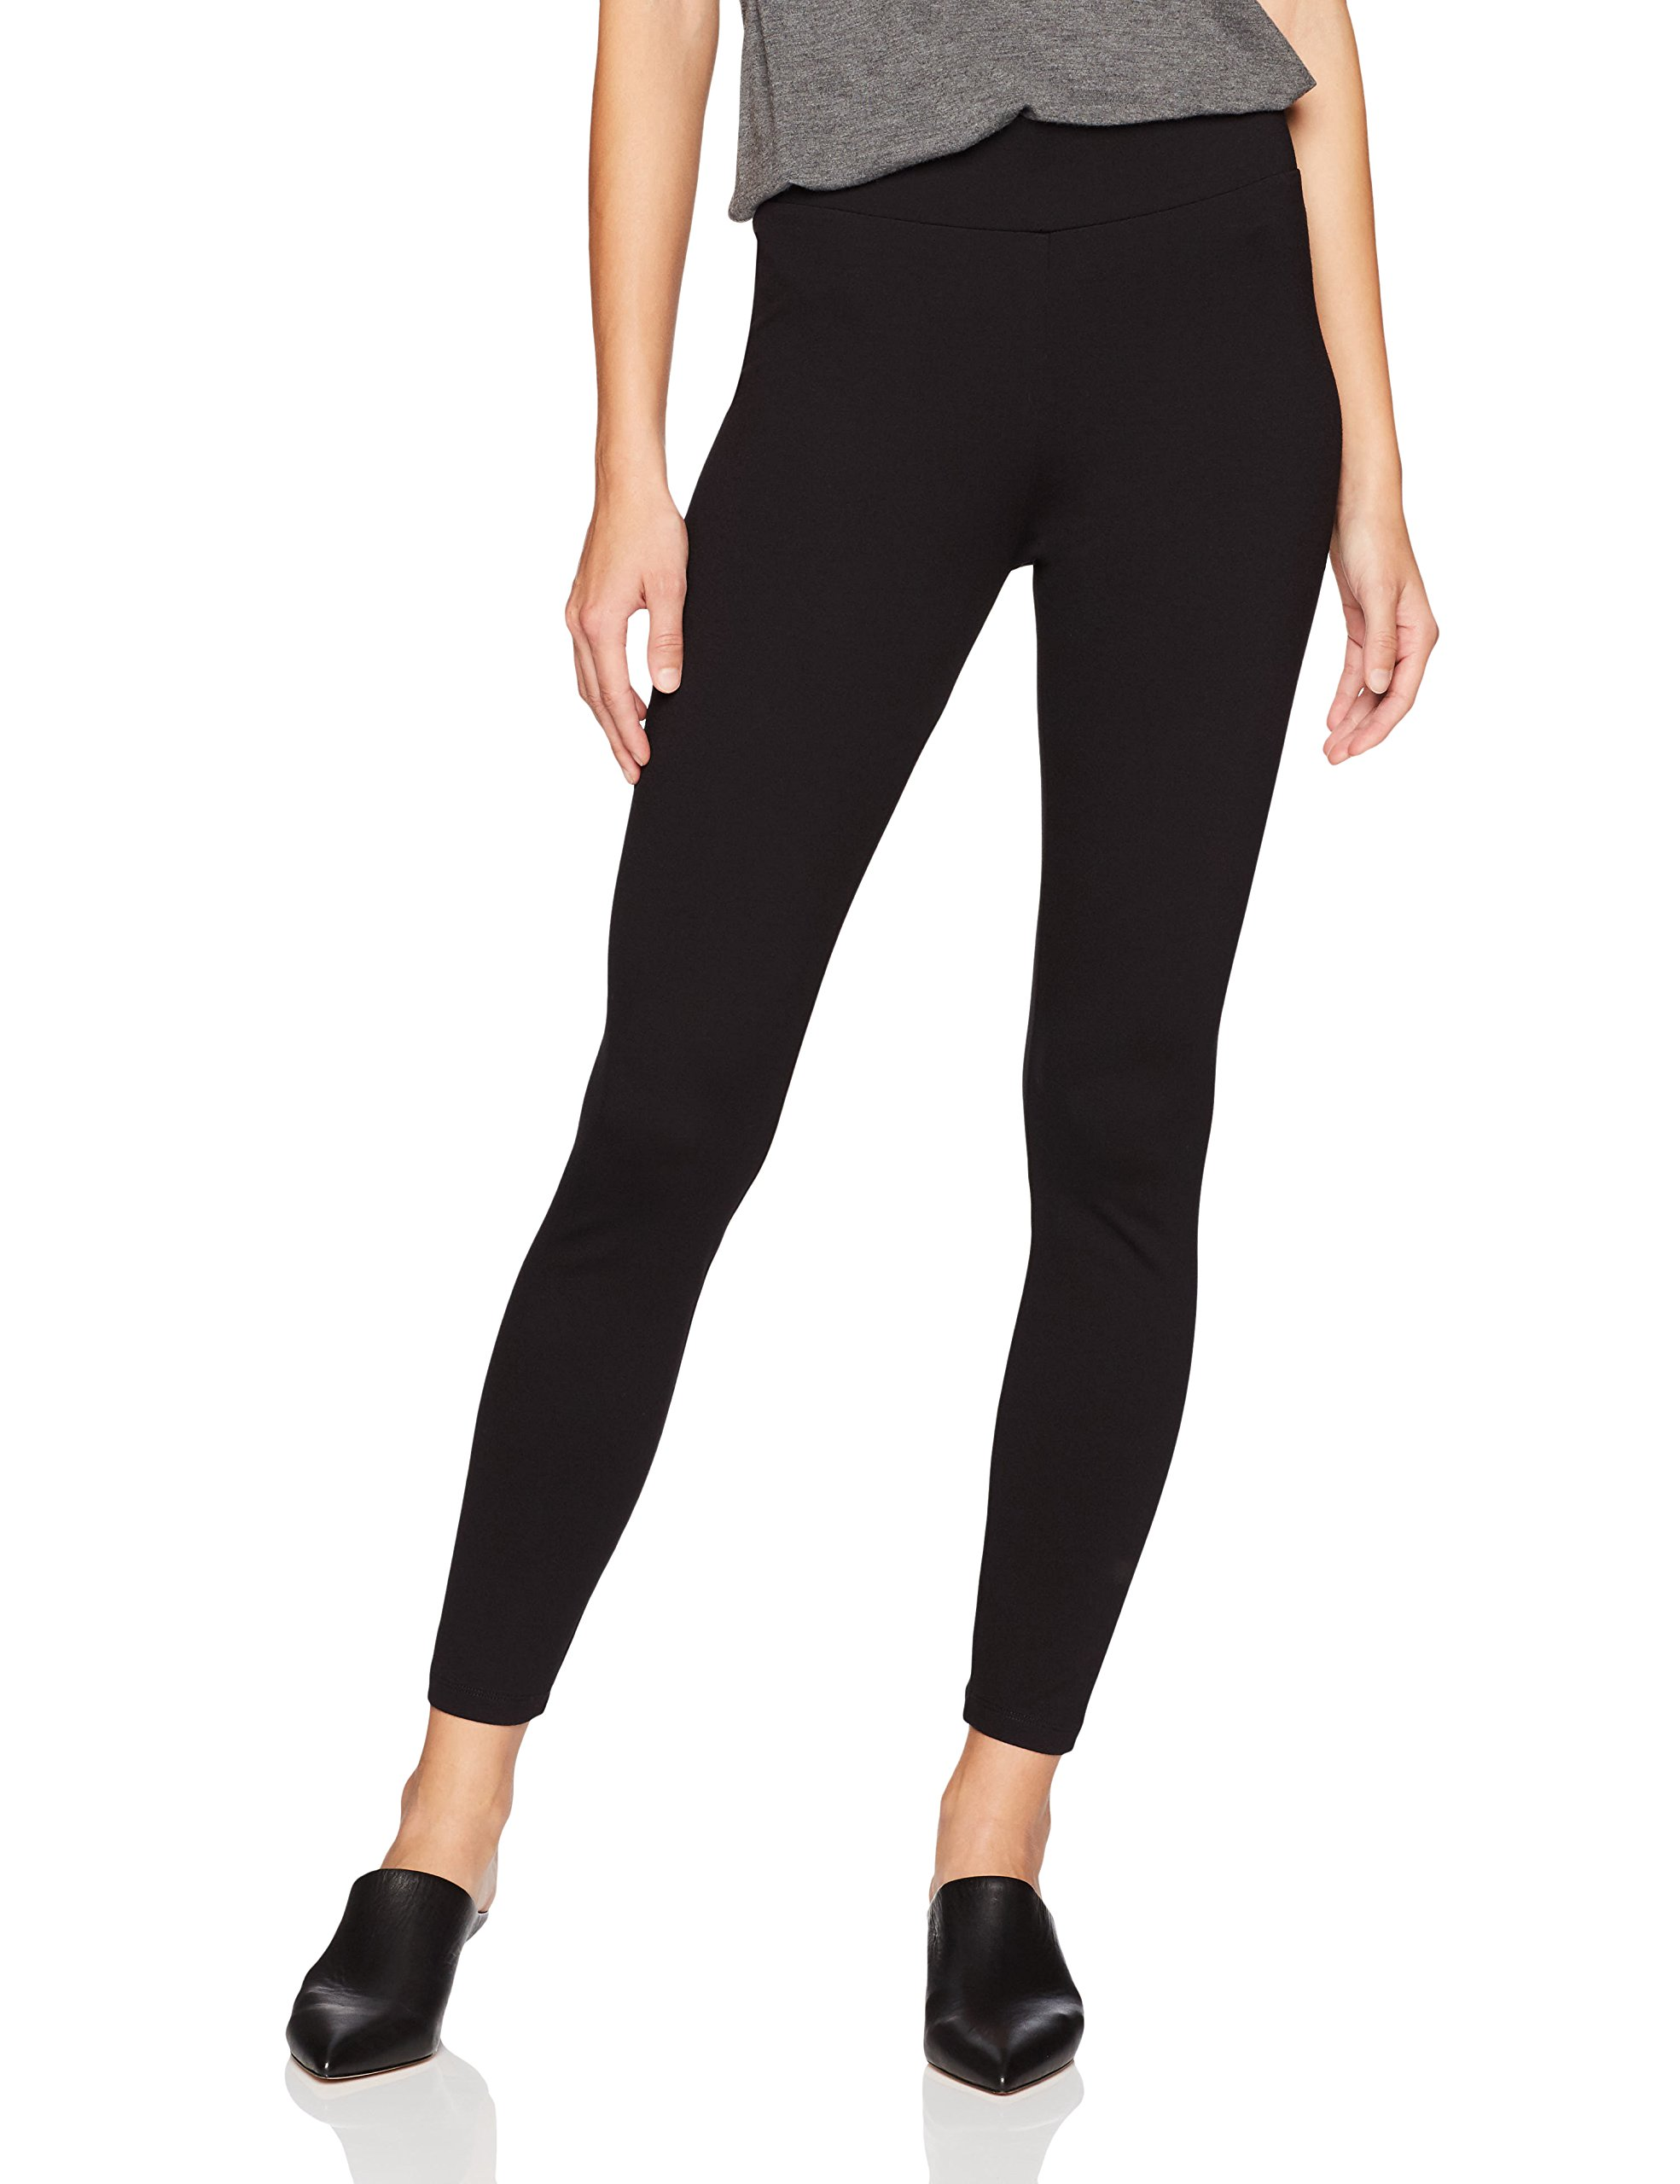 Daily Ritual Women's Ponte Knit Legging, Black, L, Regular